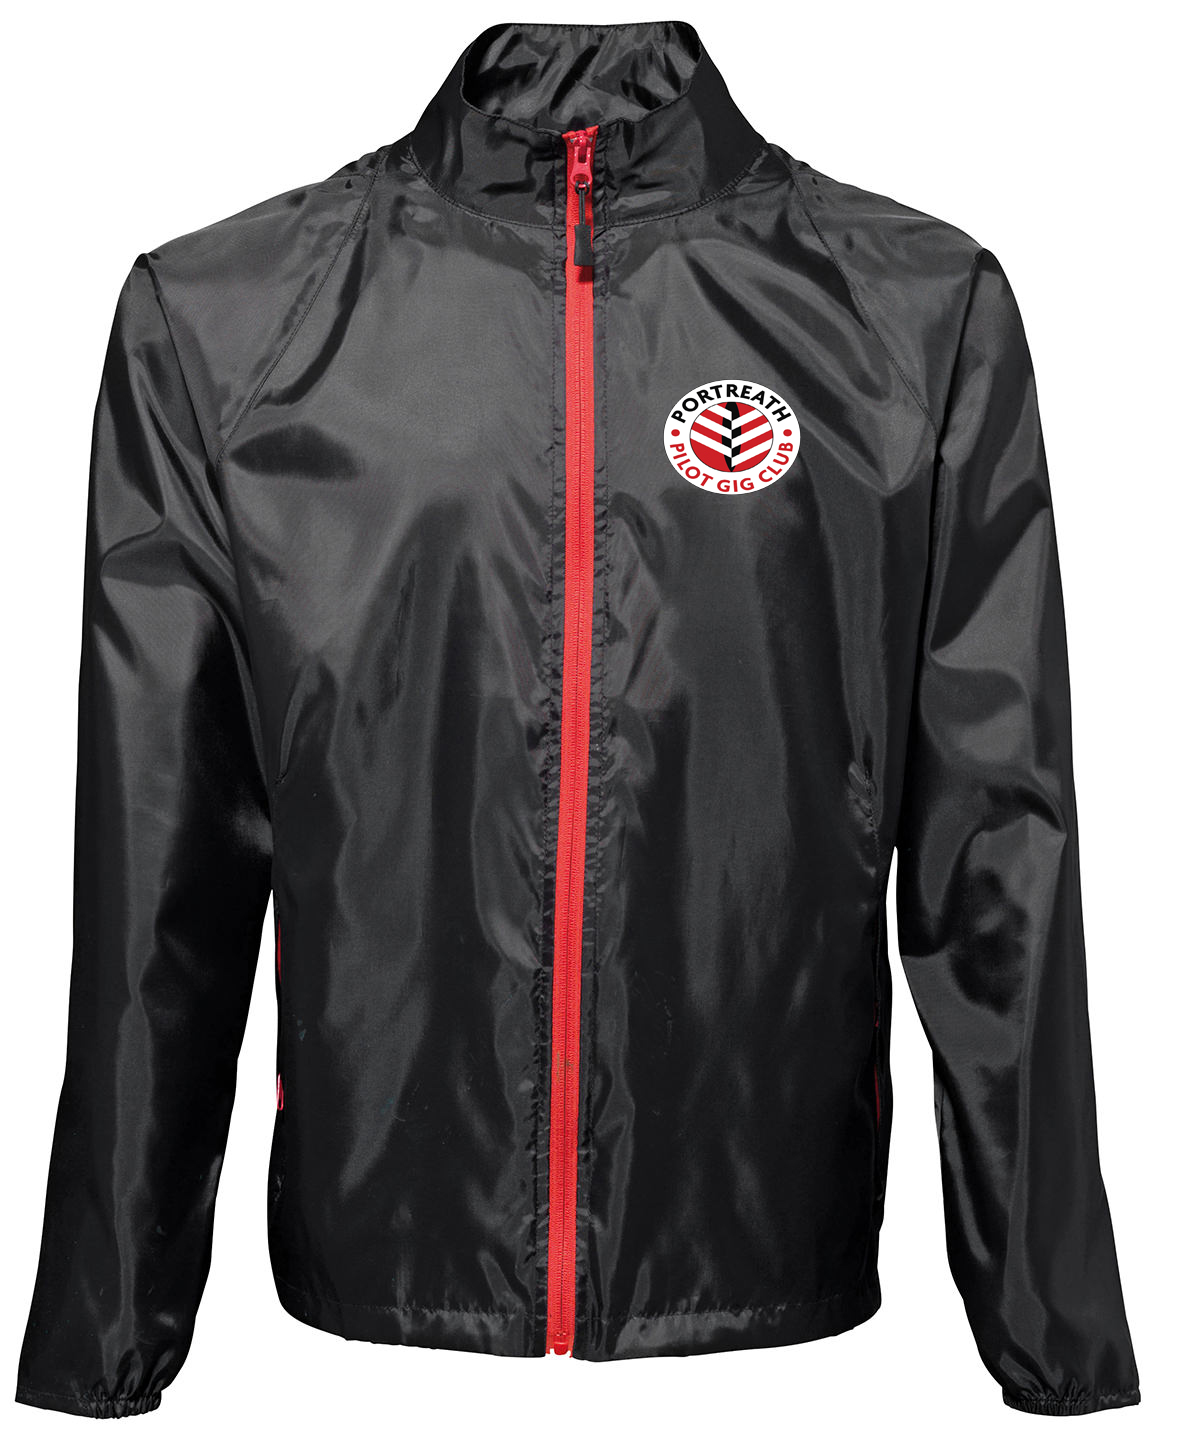 PGC Lightweight Jacket